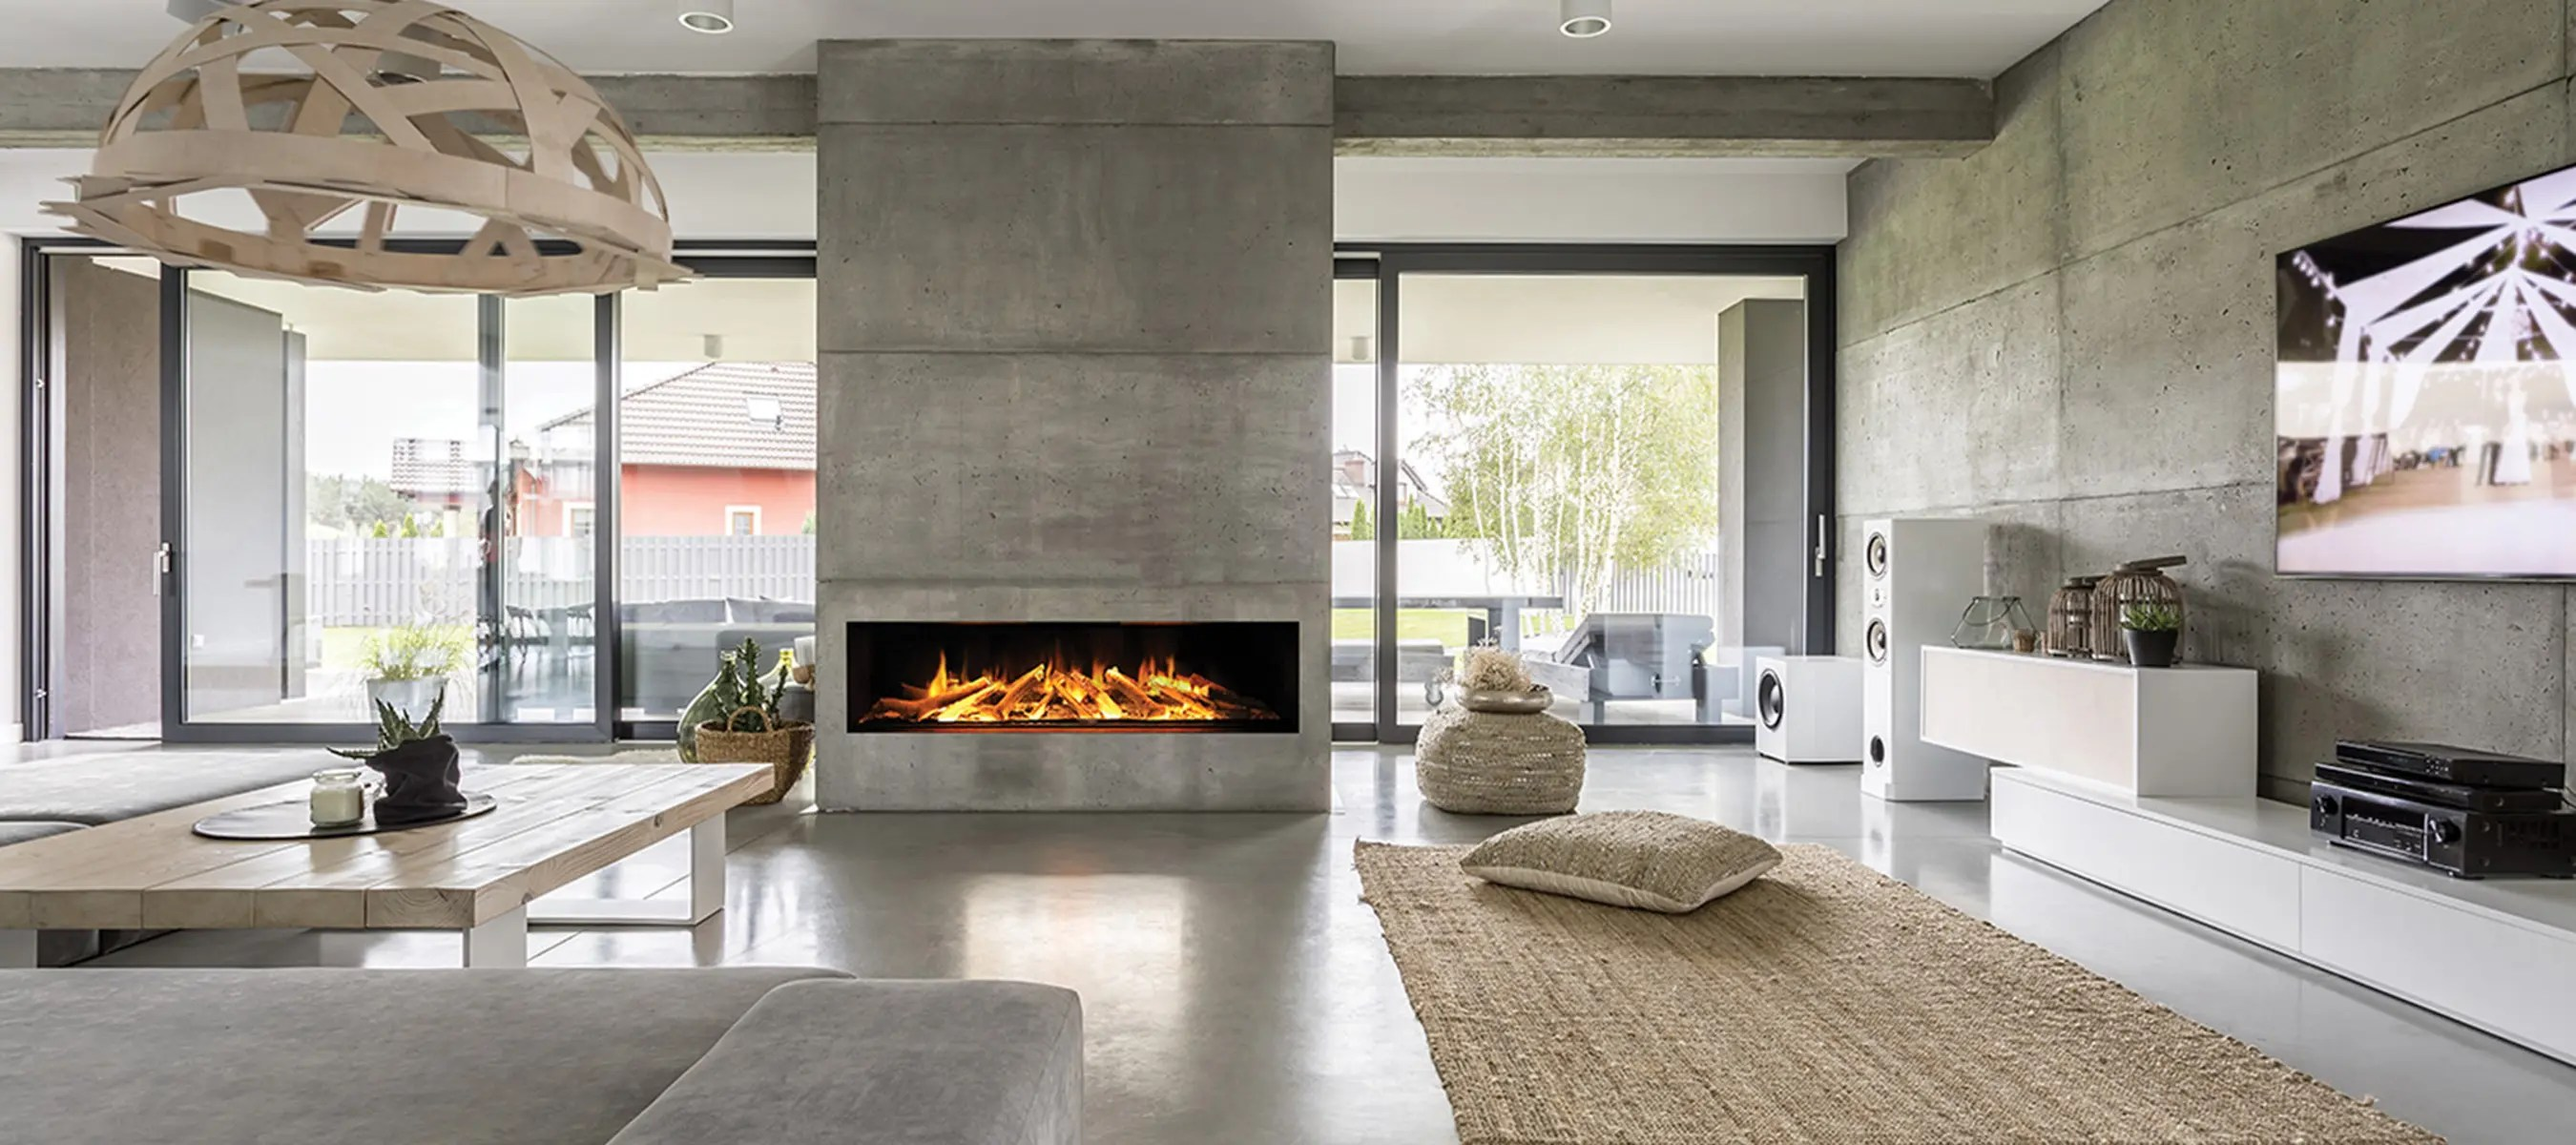 Plug In Electric Fireplaces European Home Introduces New Electric Fireplaces Line European Home